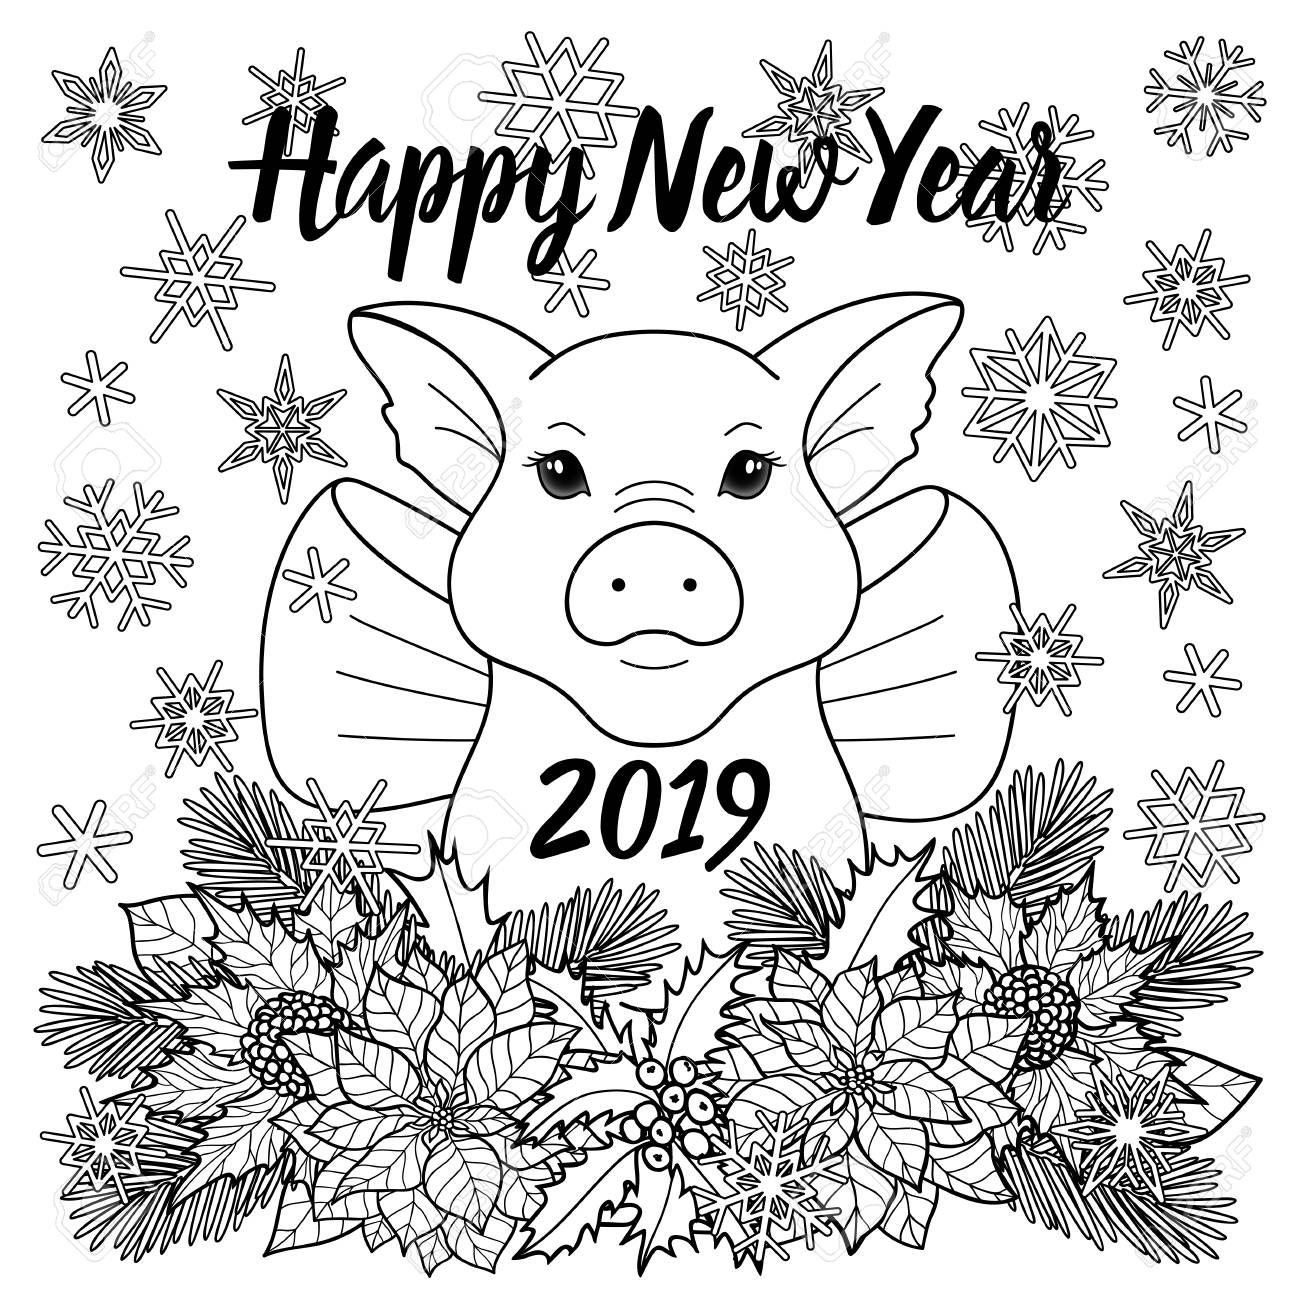 Happy new year greeting card with pig symbol 2019 winter black and white square template